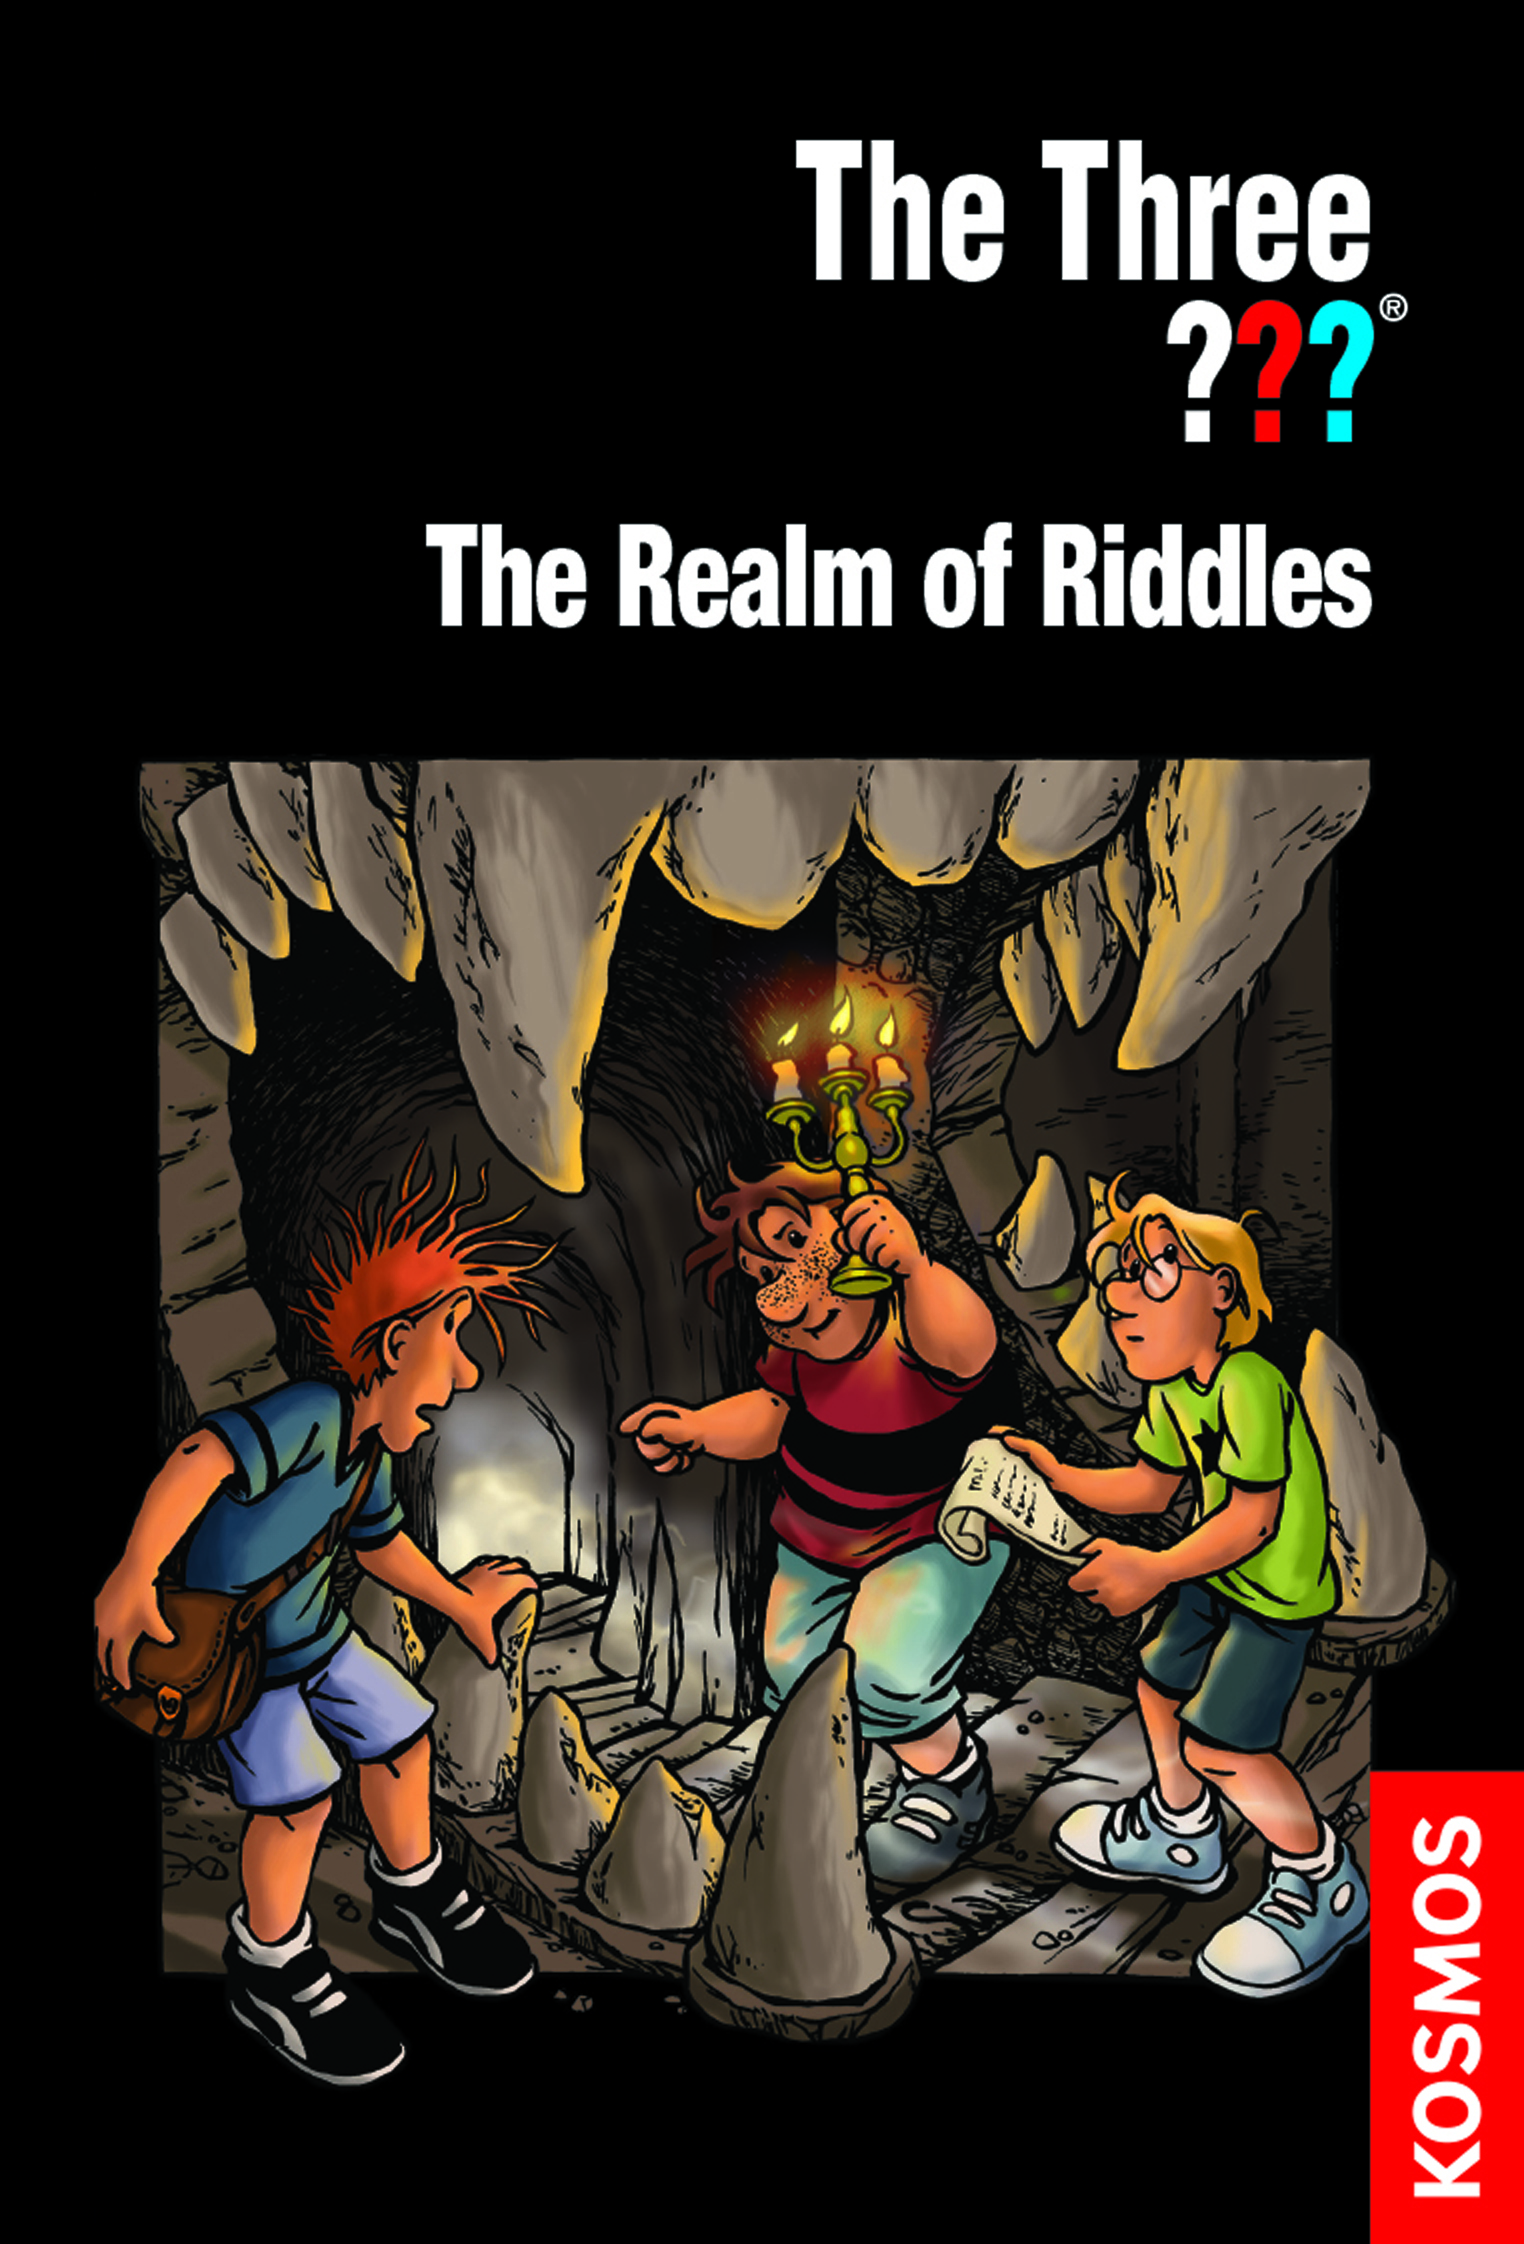 Die drei ??? Kids - The Three ???, The Realm of Riddles